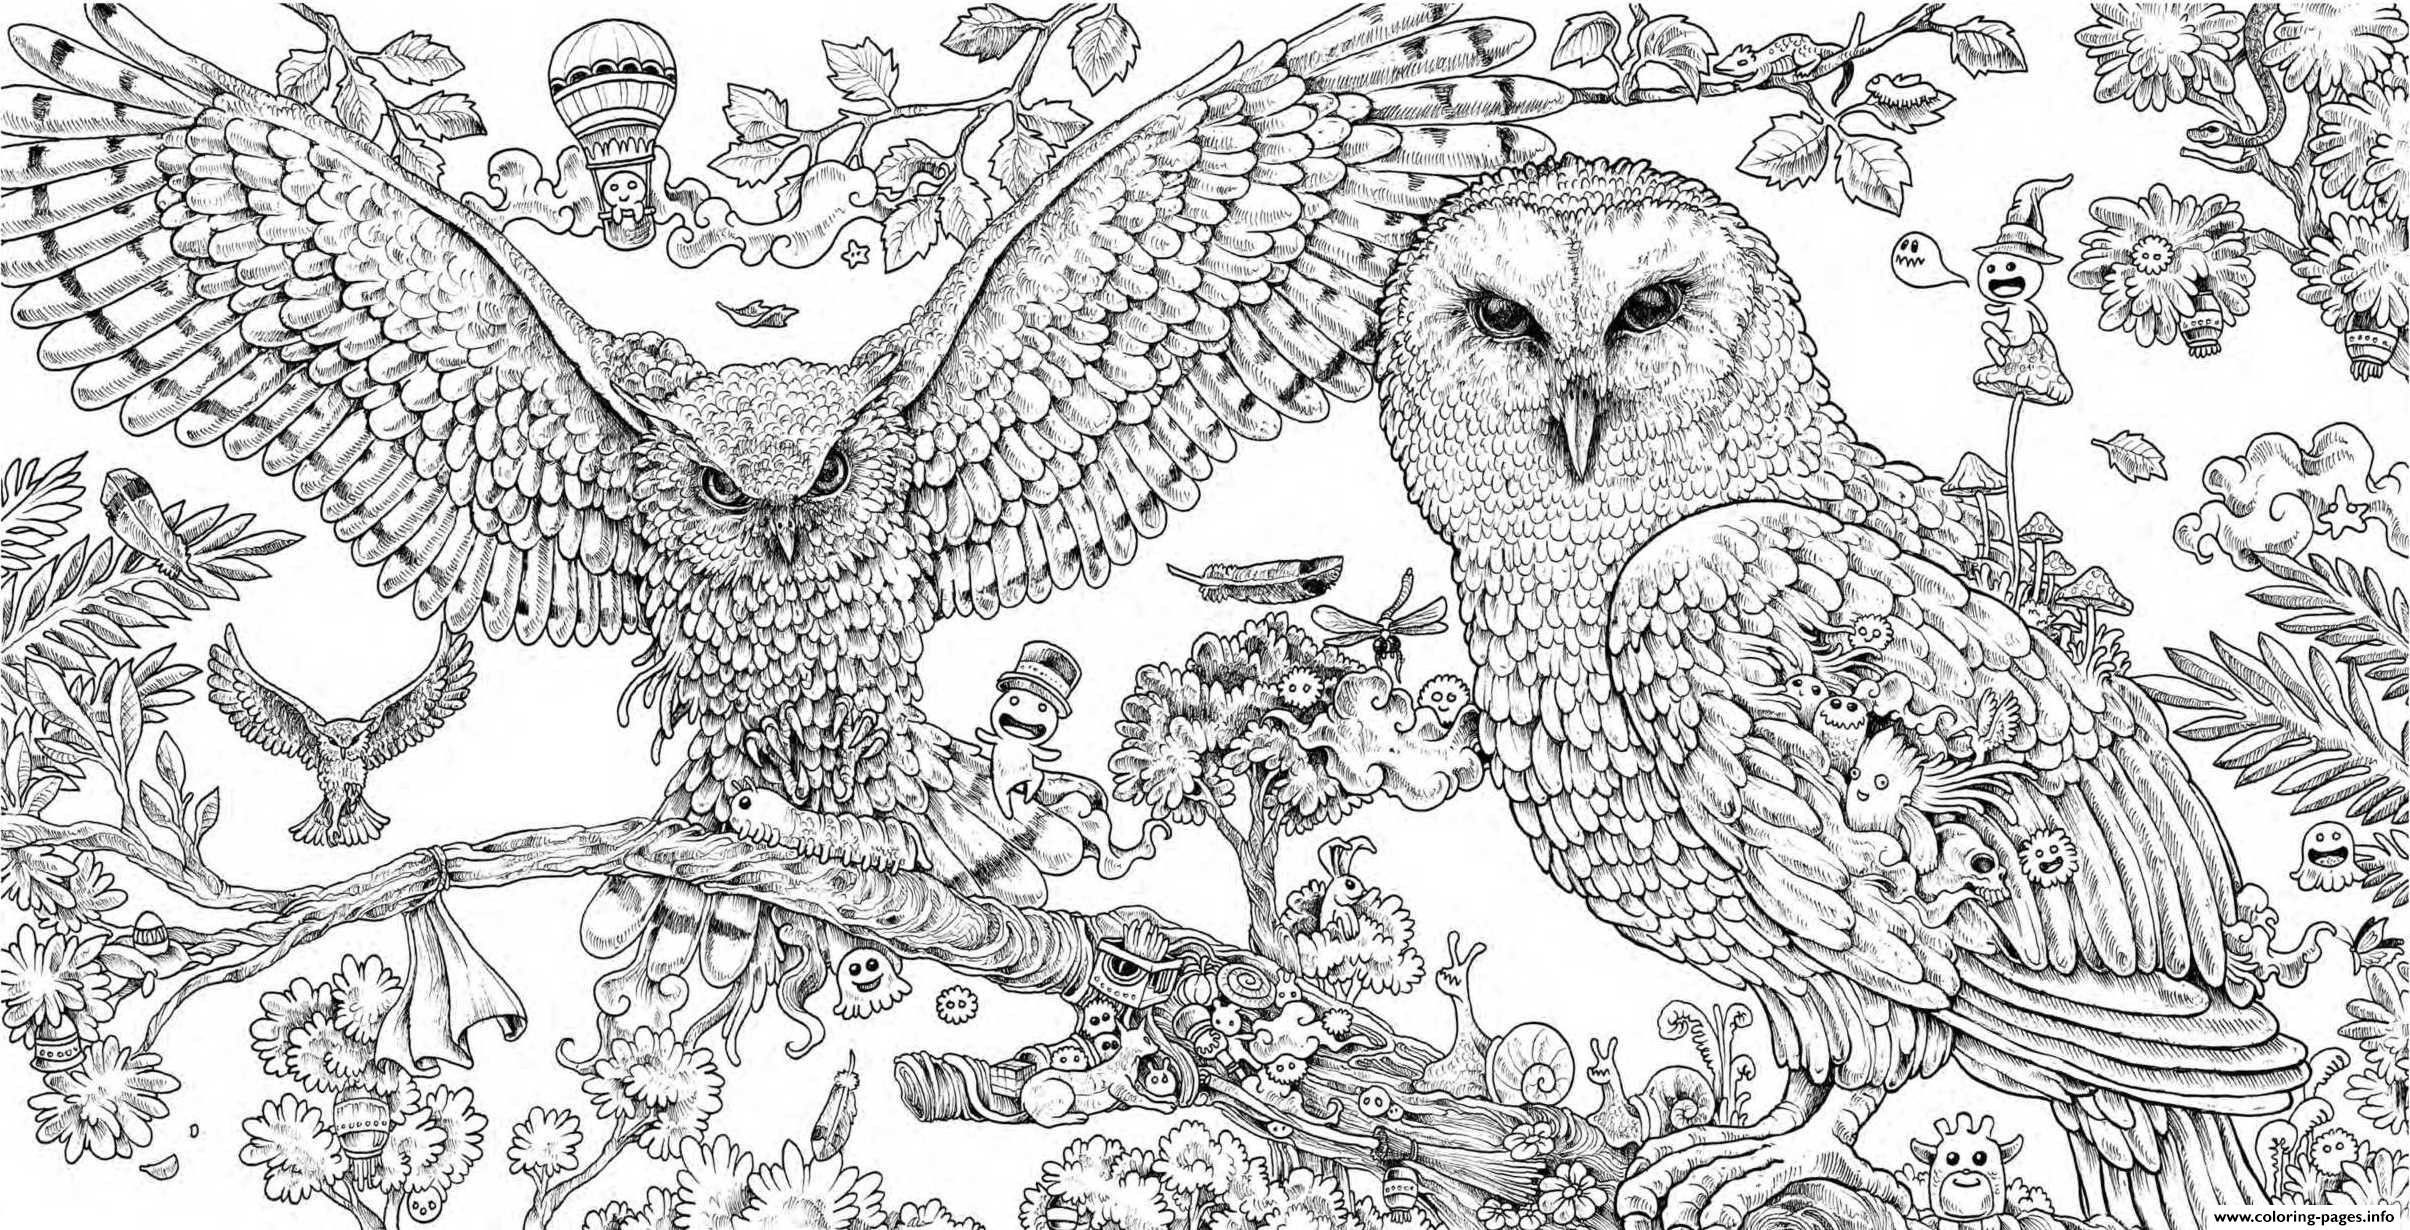 Coloring Pages Of Animals Hard From The Thousand Images On The Internet Regarding Coloring Horse Coloring Pages Bird Coloring Pages Zoo Animal Coloring Pages